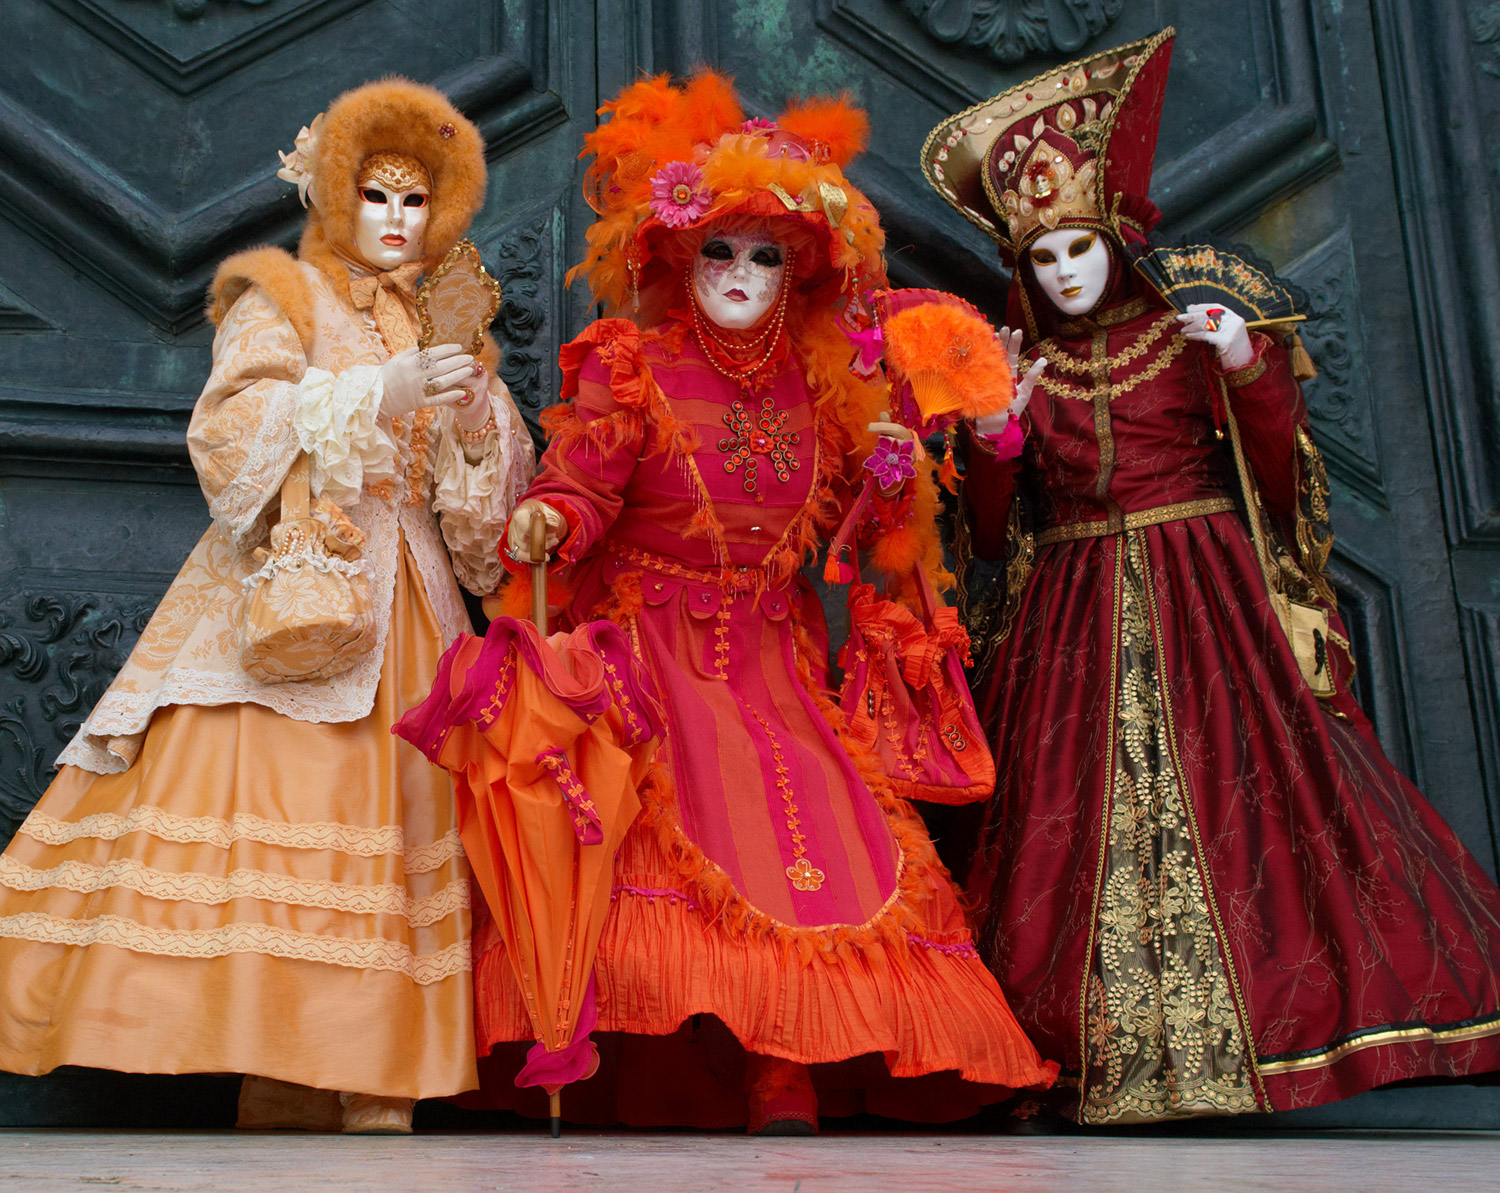 Low angle photography - Venice Carnival